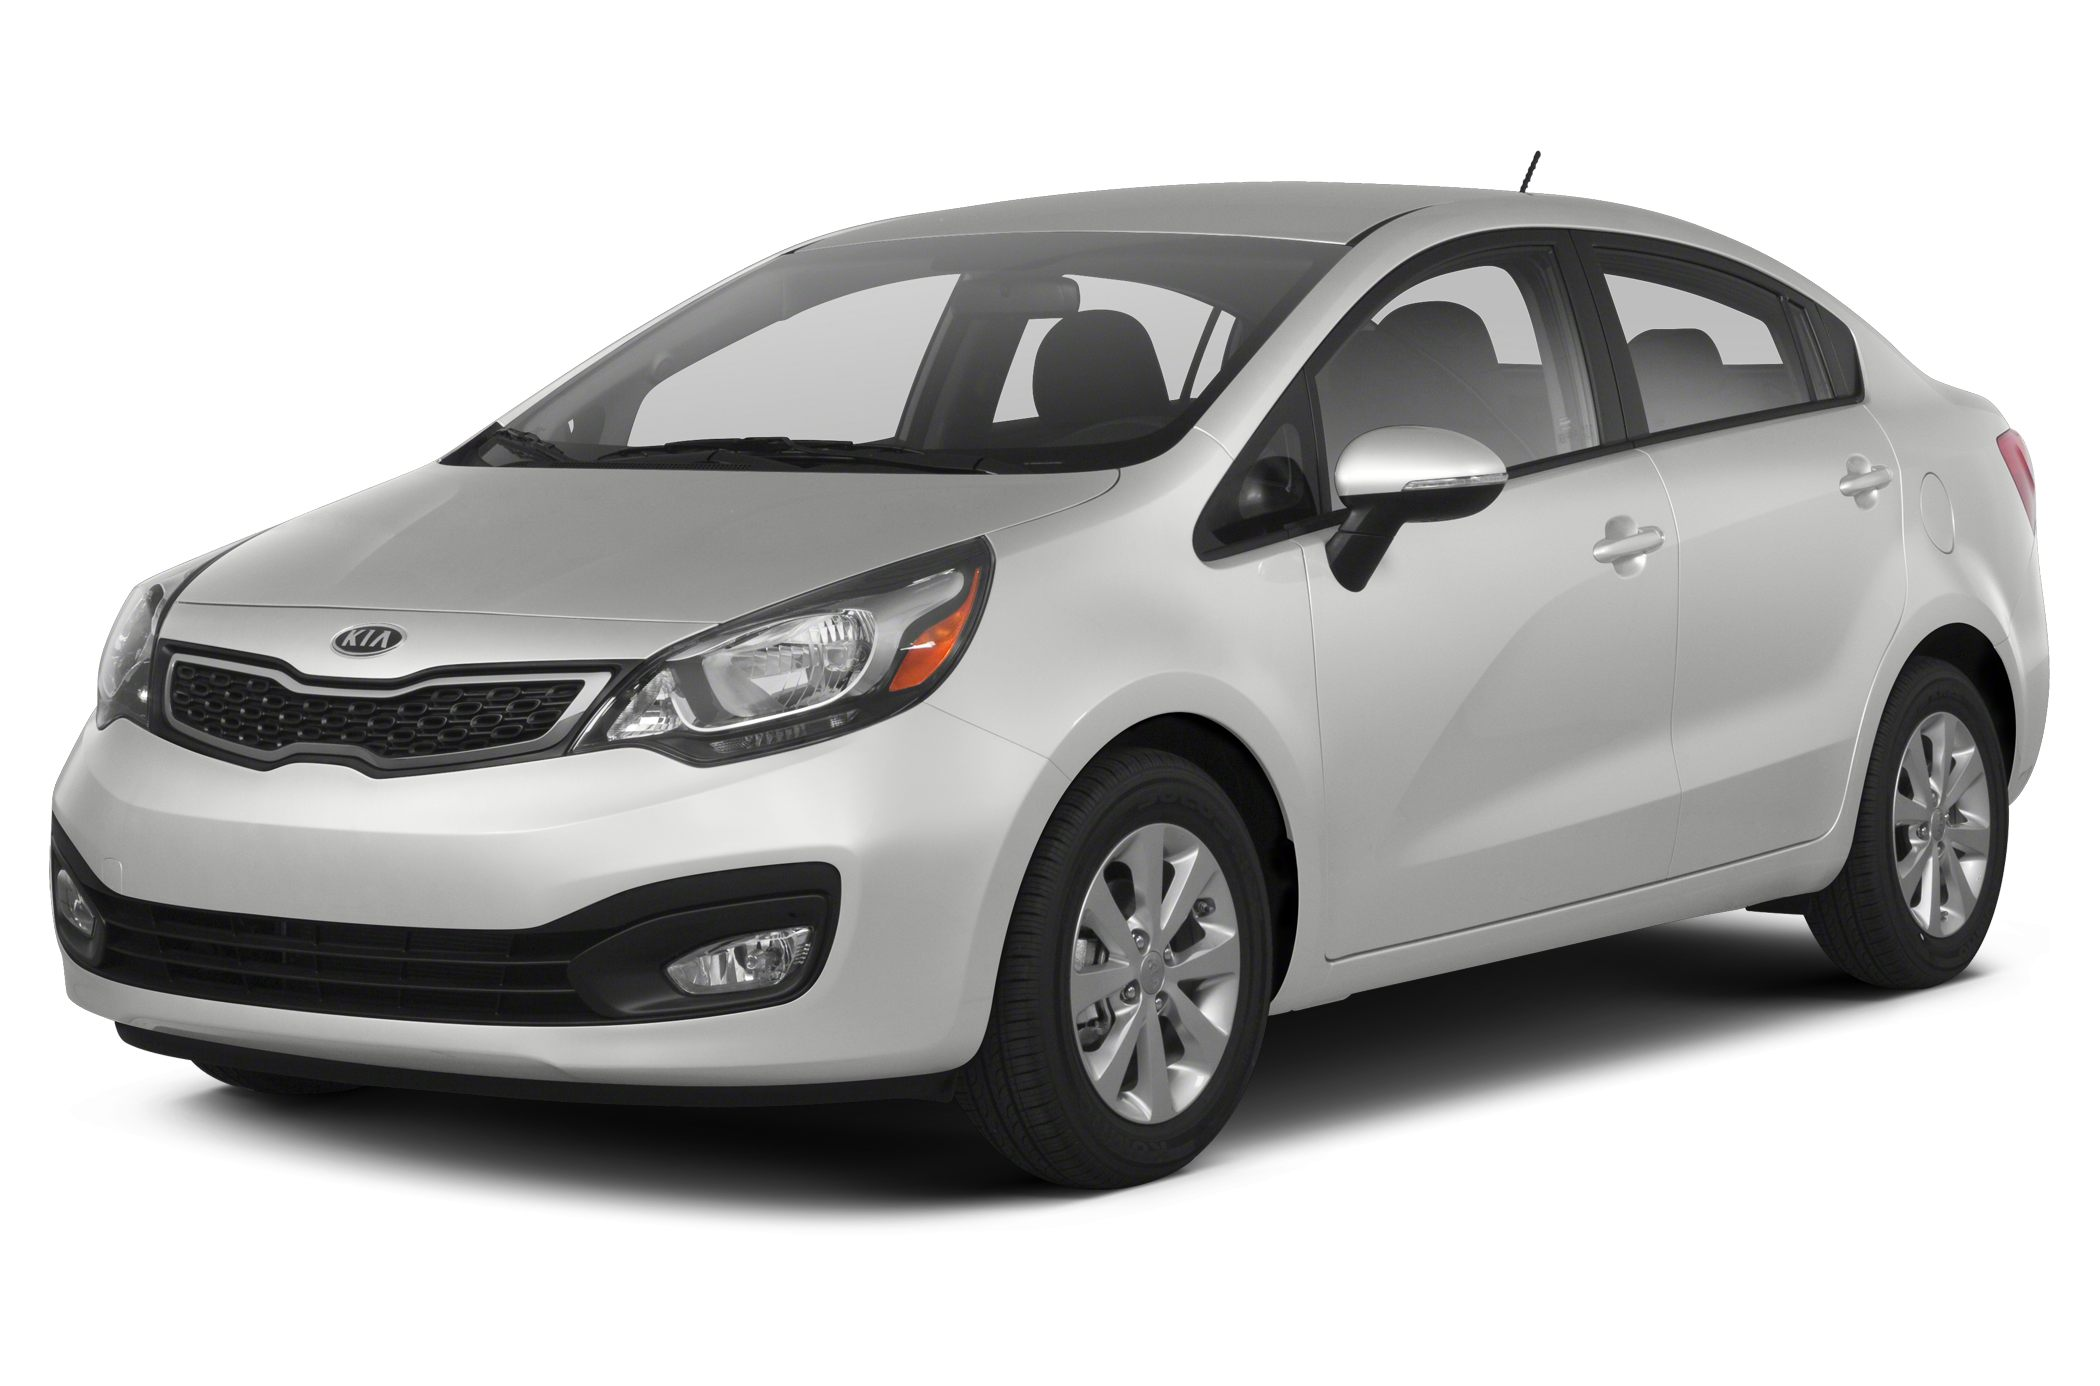 2013 Kia Rio LX Sedan for sale in Pendleton for $14,900 with 14,442 miles